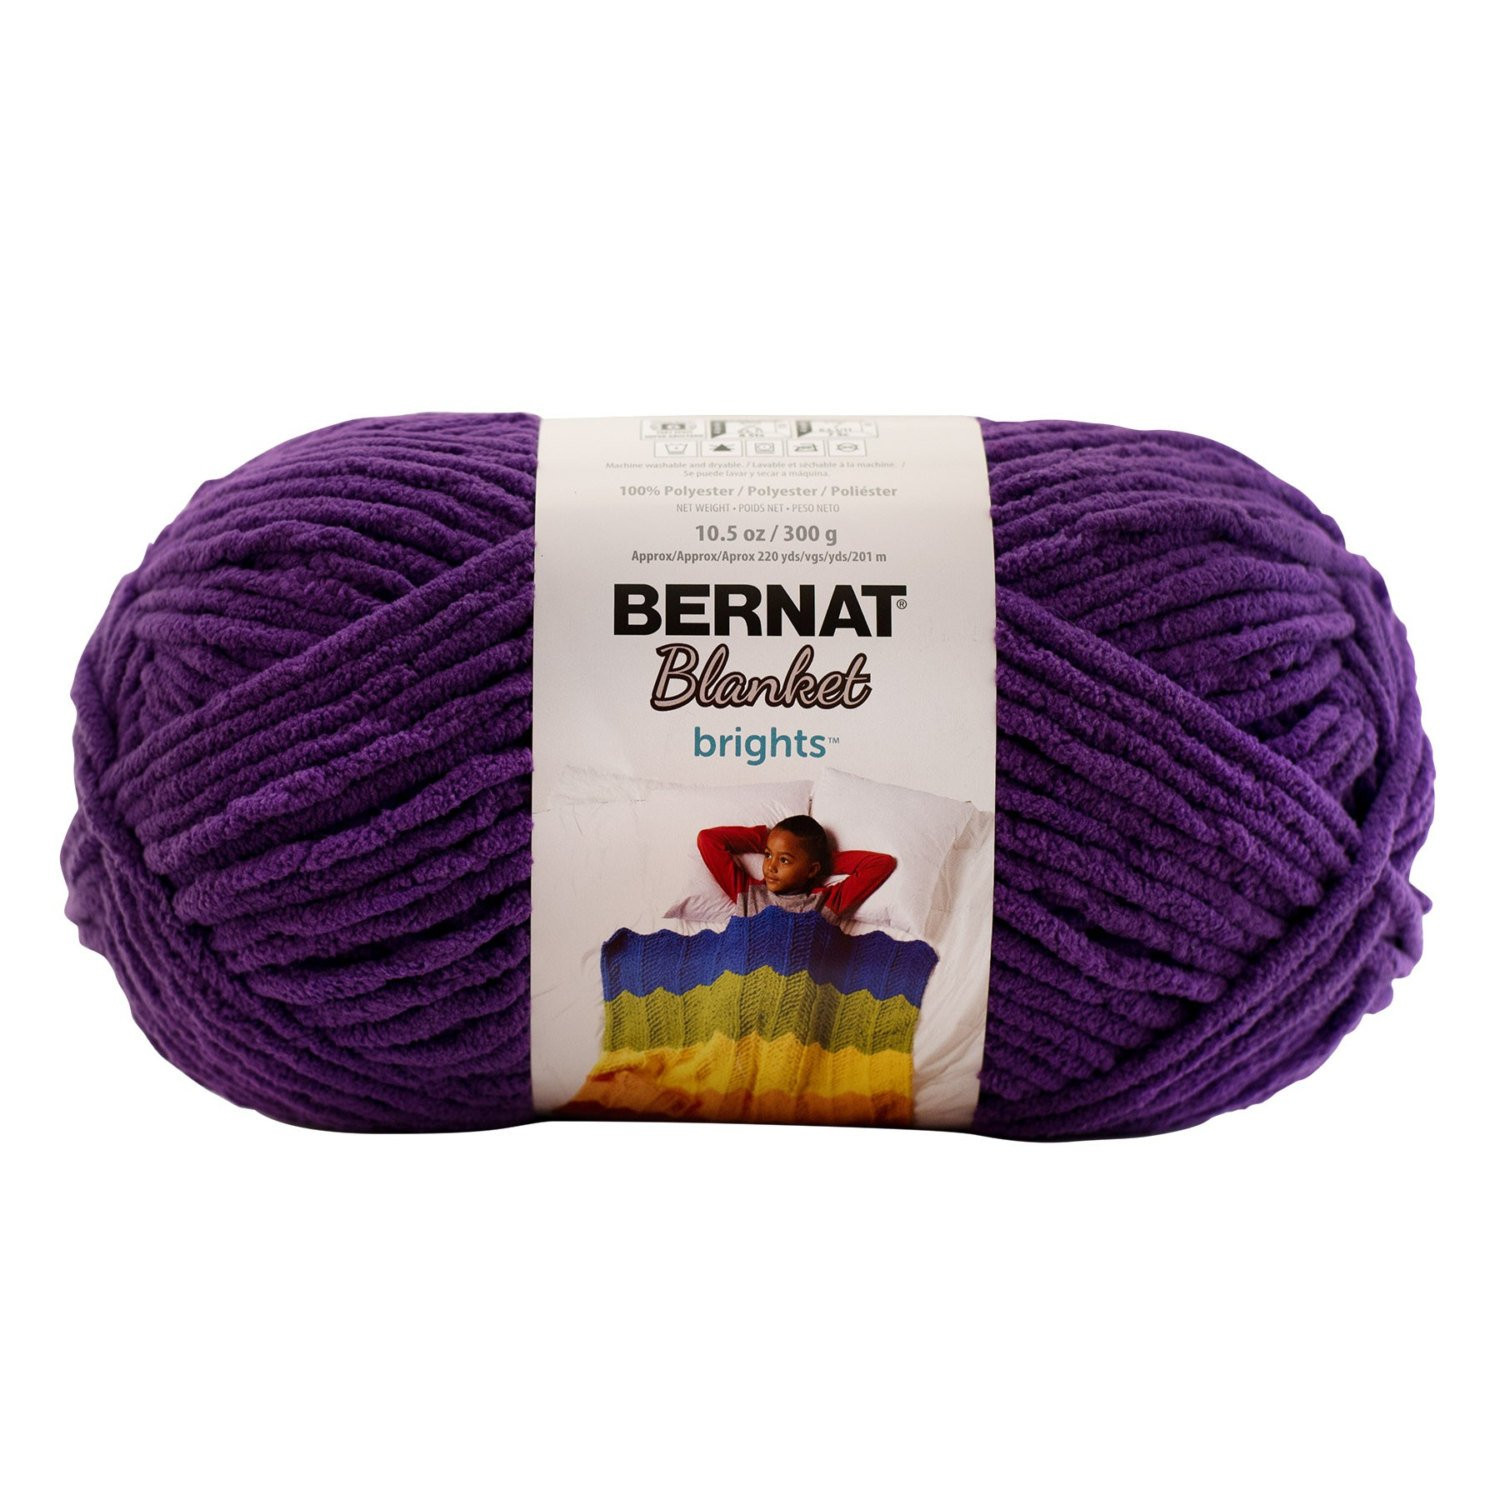 Bernat Blanket Brights Beautiful Bernat Blanket Brights Yarn Pow Purple Skein 300 Grams Of Amazing 42 Pictures Bernat Blanket Brights